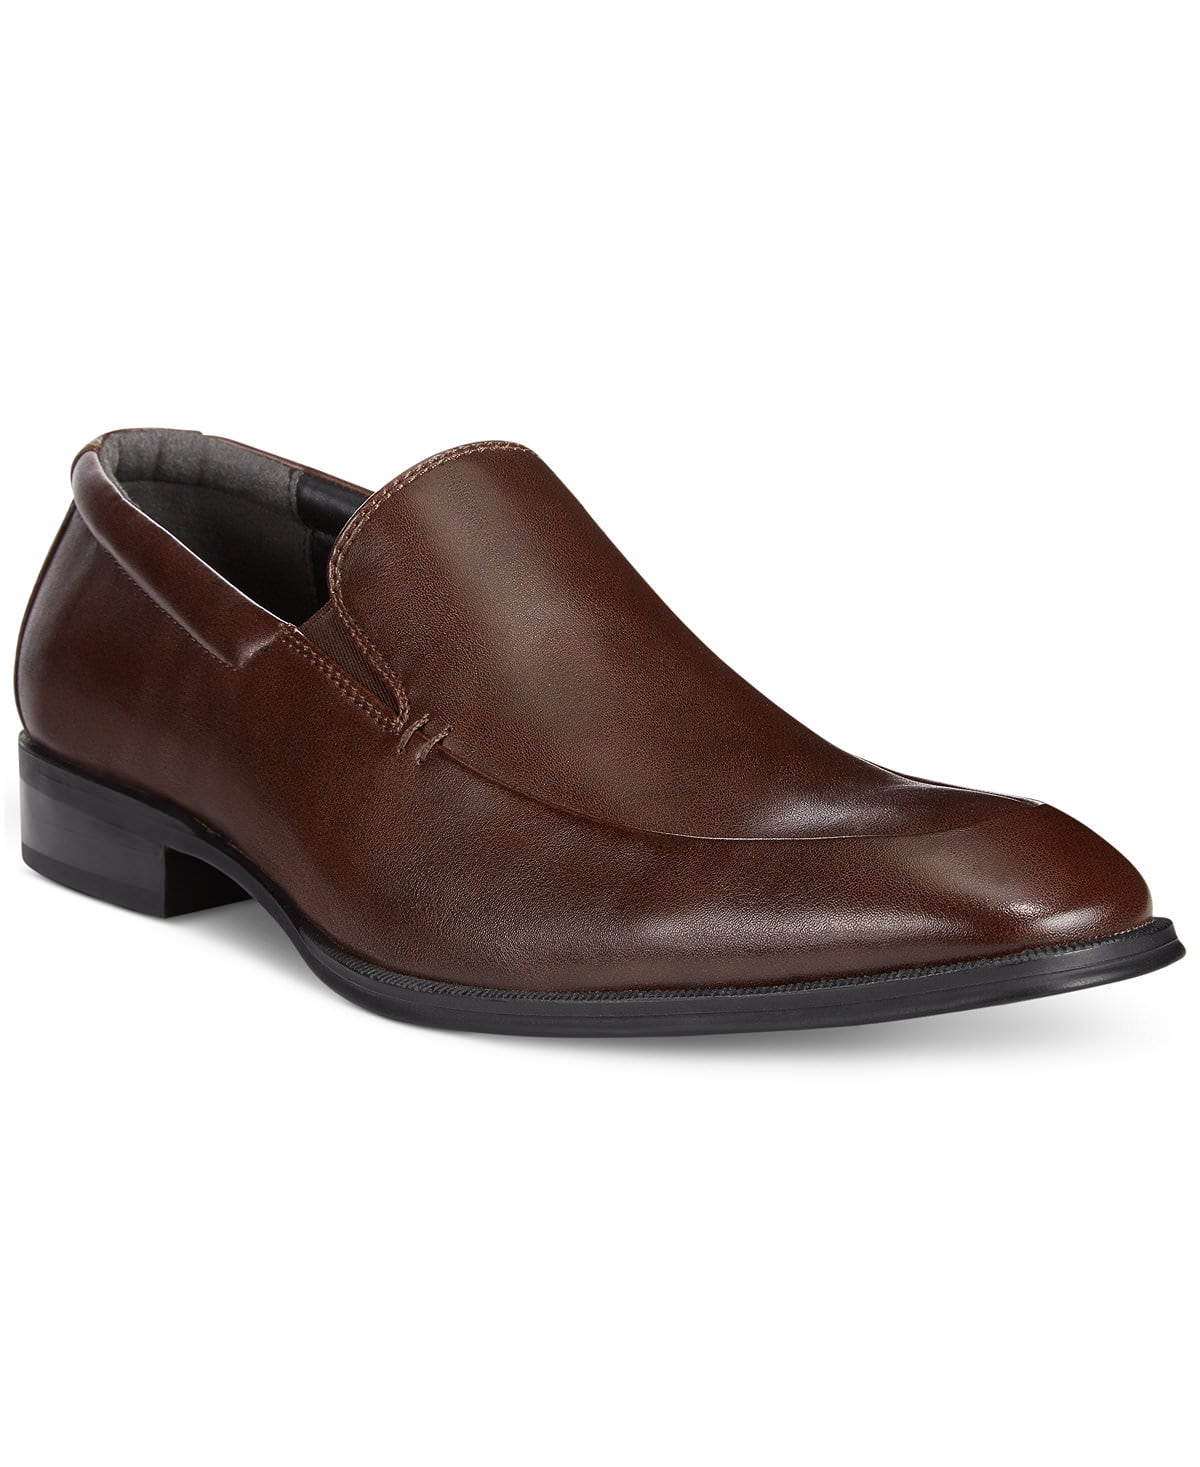 Alfani Men's Charles Moc Toe Loafer $20 + $3 ship (some wide sizes)